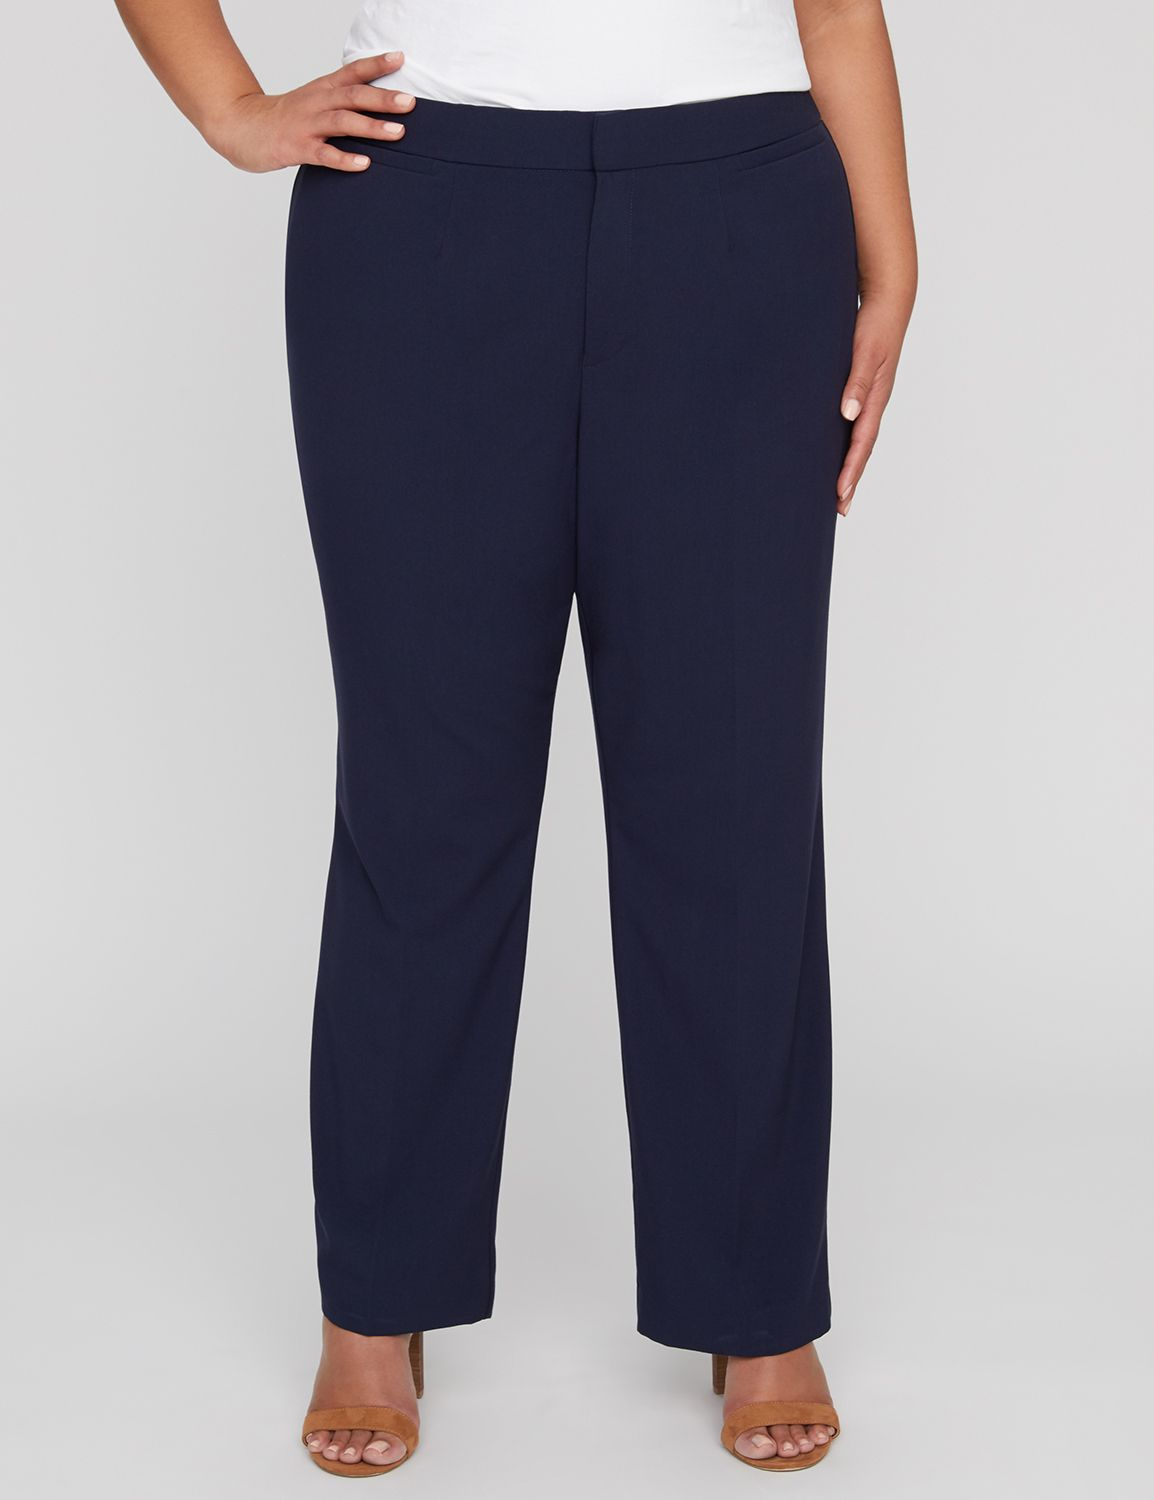 Right Fit Pant (Curvy) Right Fit Pant (Curvy) MP-300043645